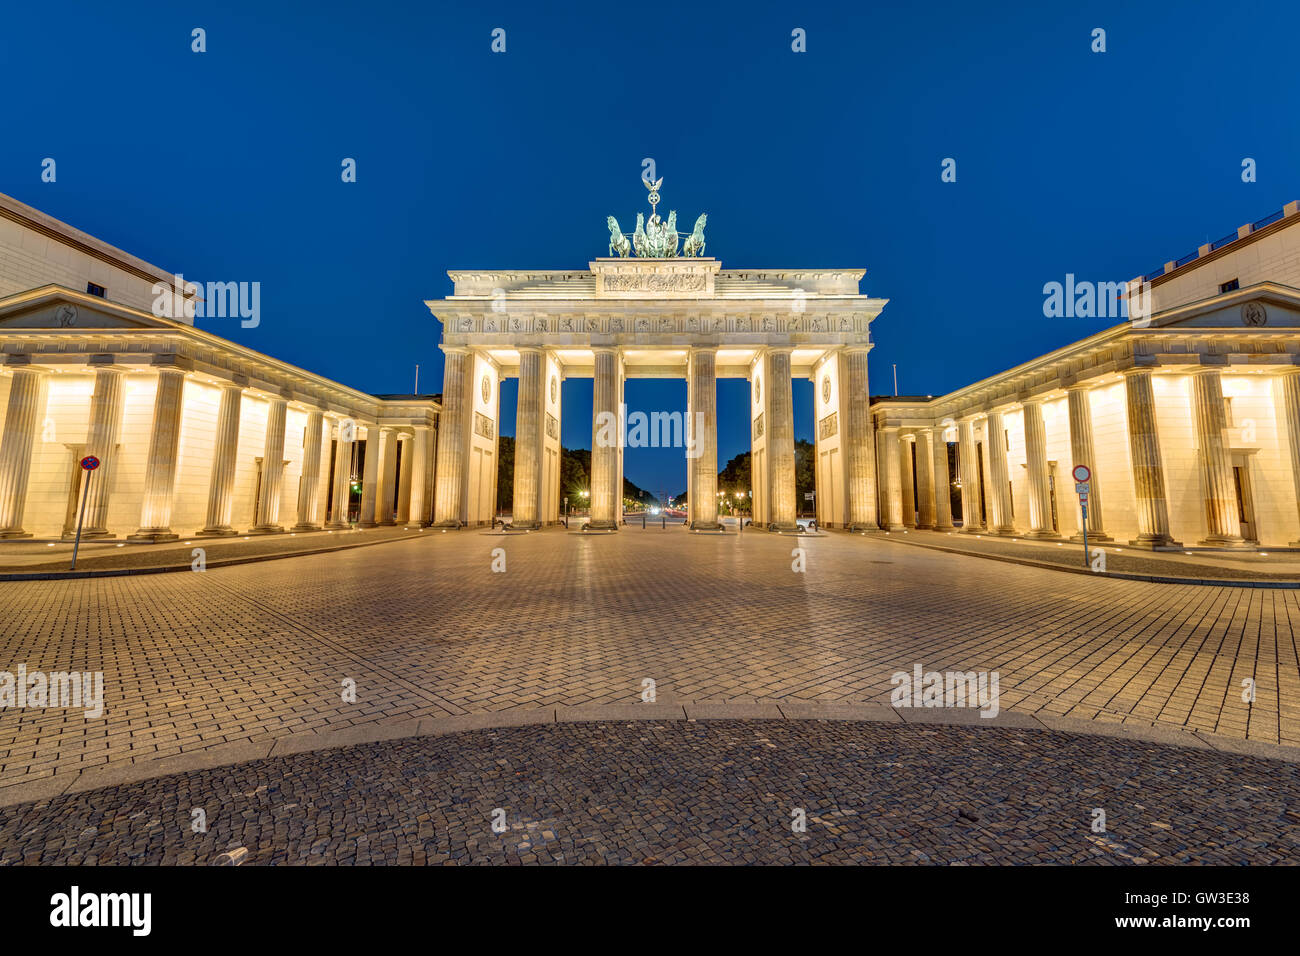 The famous Brandenburger Tor in Berlin, Germany, at night - Stock Image